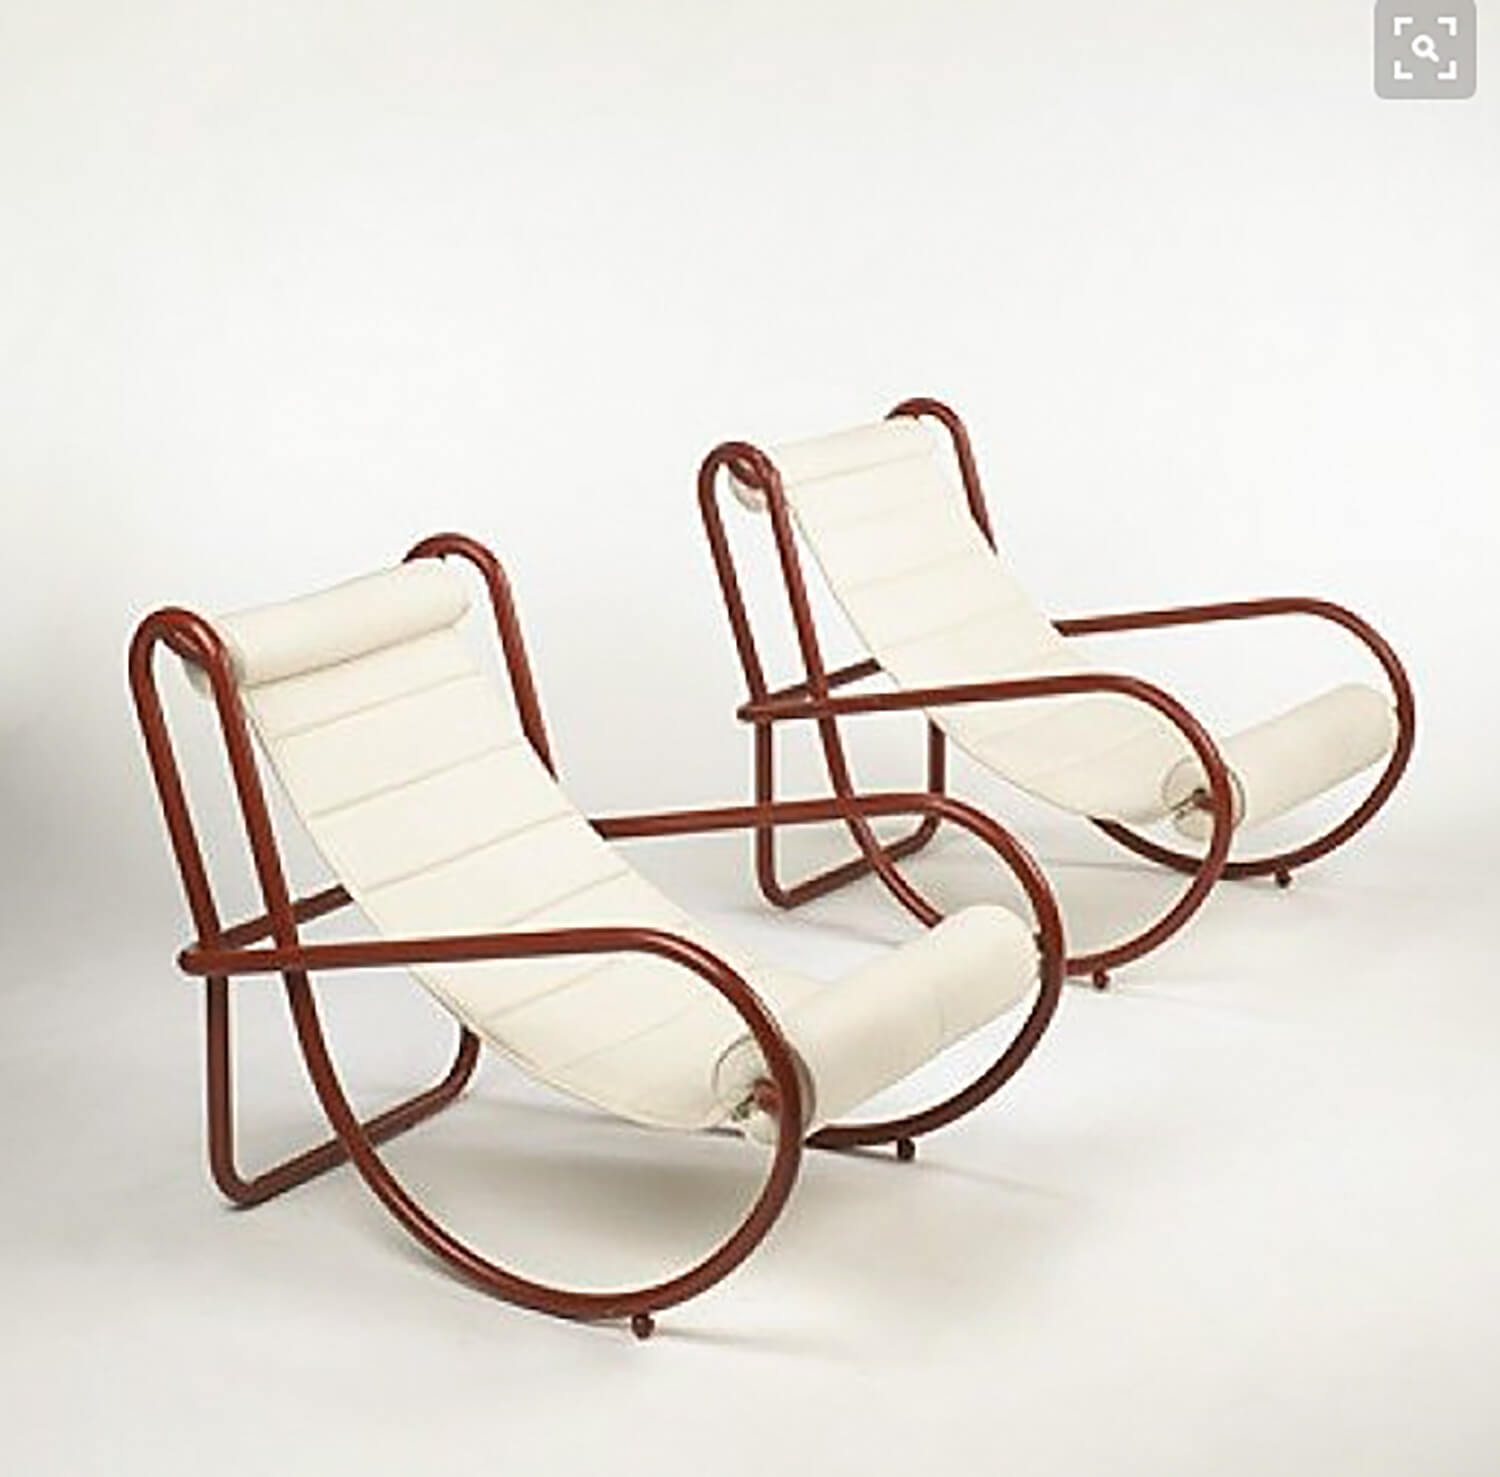 Est-Living-Style-Hunter-Arent&Pyke-Locus-Solus-Chairs